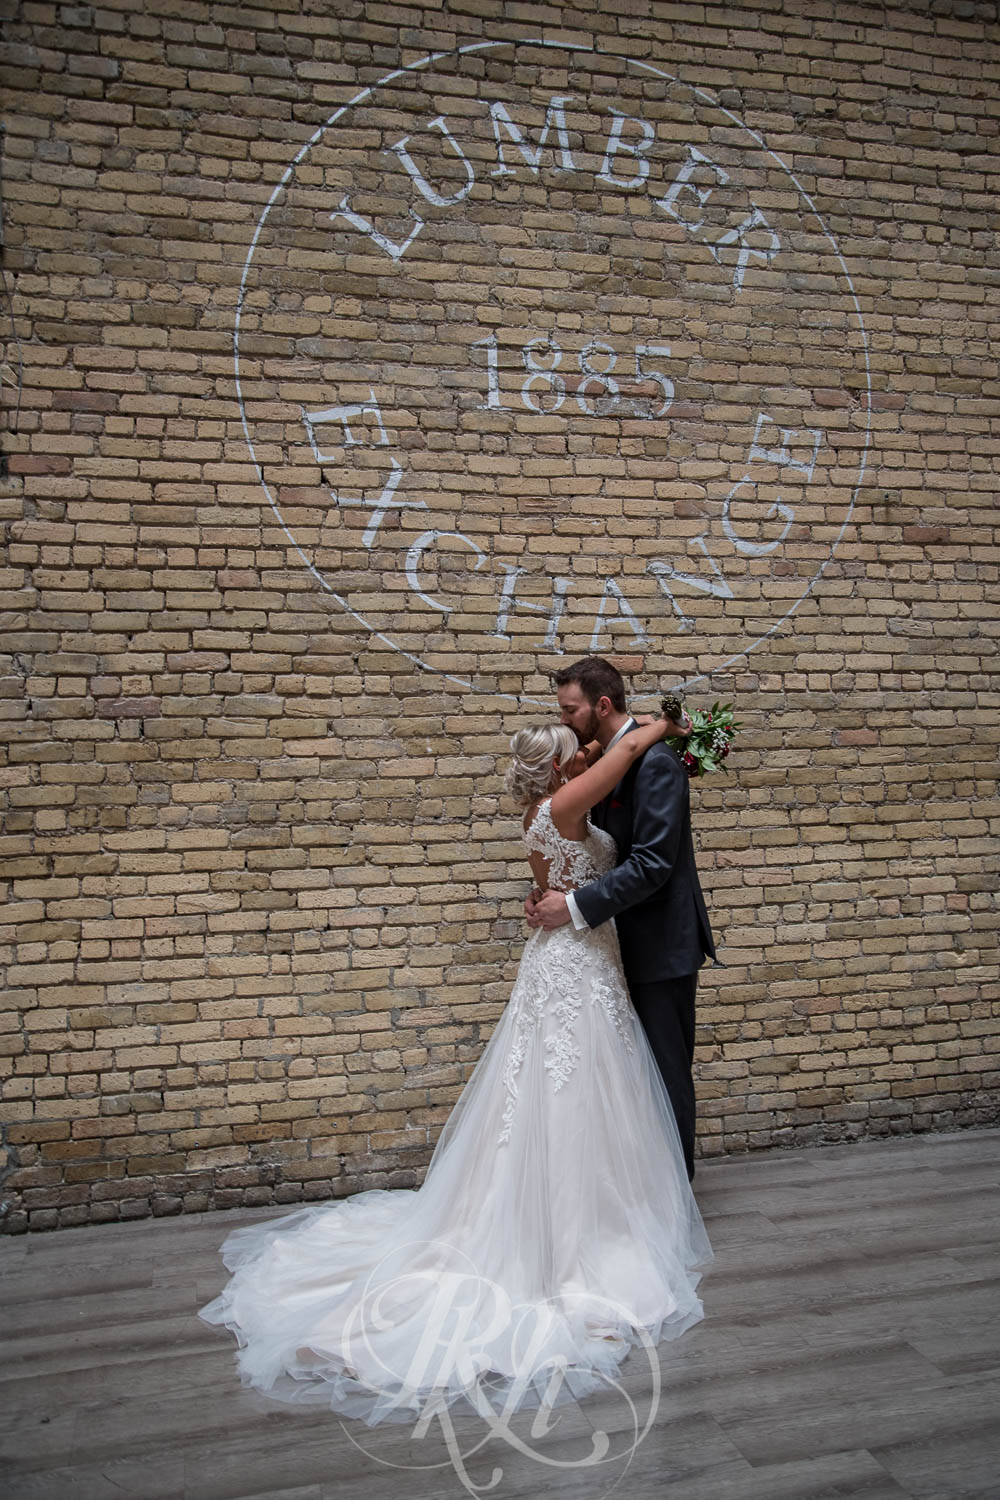 Katie & Jeff - Minnesota Wedding Photography - Lumber Exchange Building - RKH Images - Blog  (17 of 49).jpg